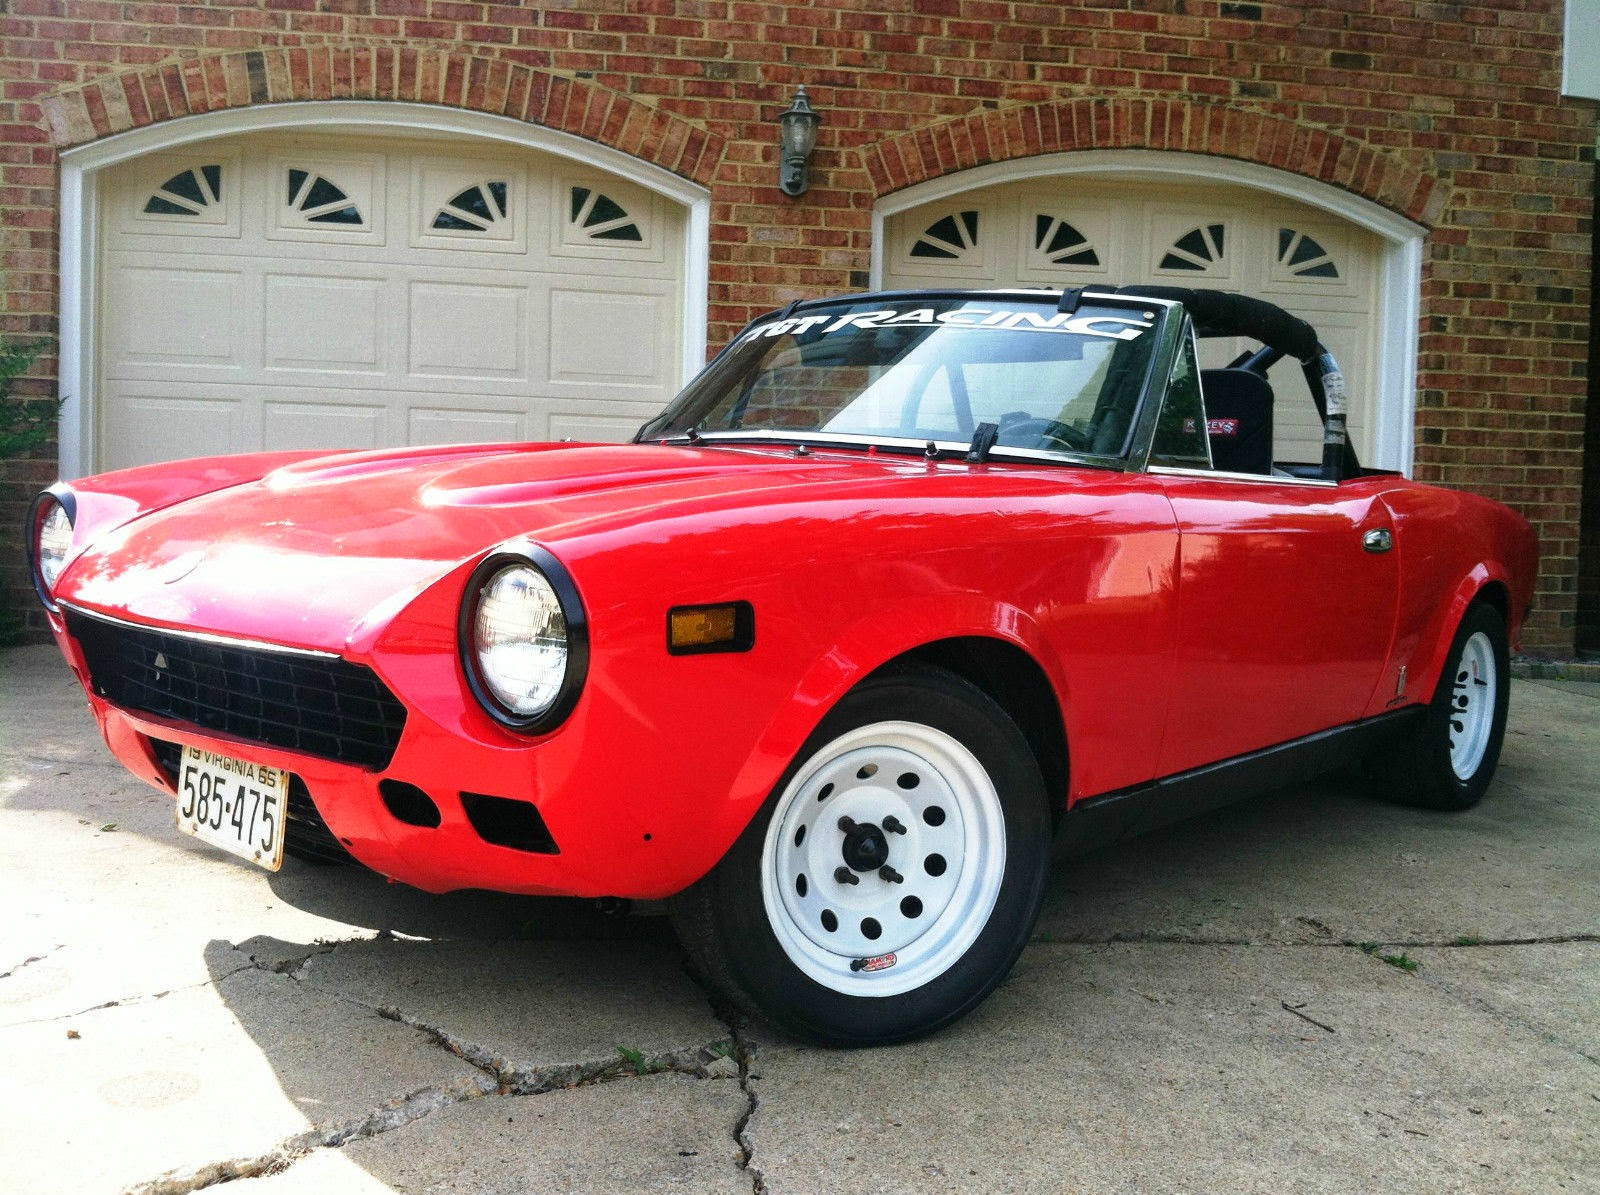 daily turismo 5k vintage racer 1970 fiat 124 sport spiderthe seller of this 124 spider does not disclose the year of manufacture for this car and given the lack of bumpers, you can\u0027t even tell if it is a